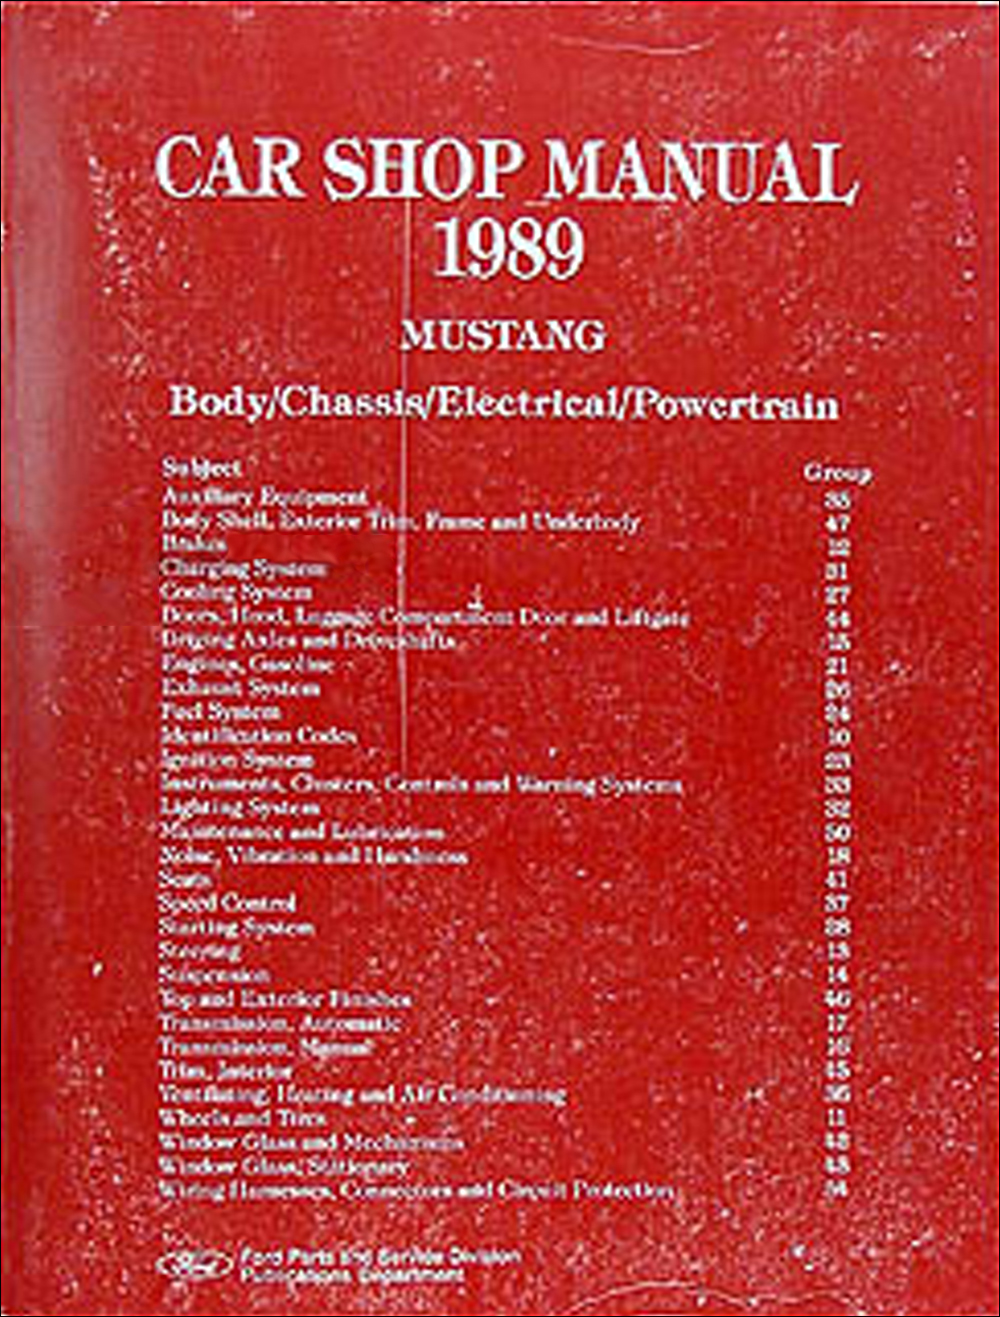 1989 Ford Mustang Repair Shop Manual Original